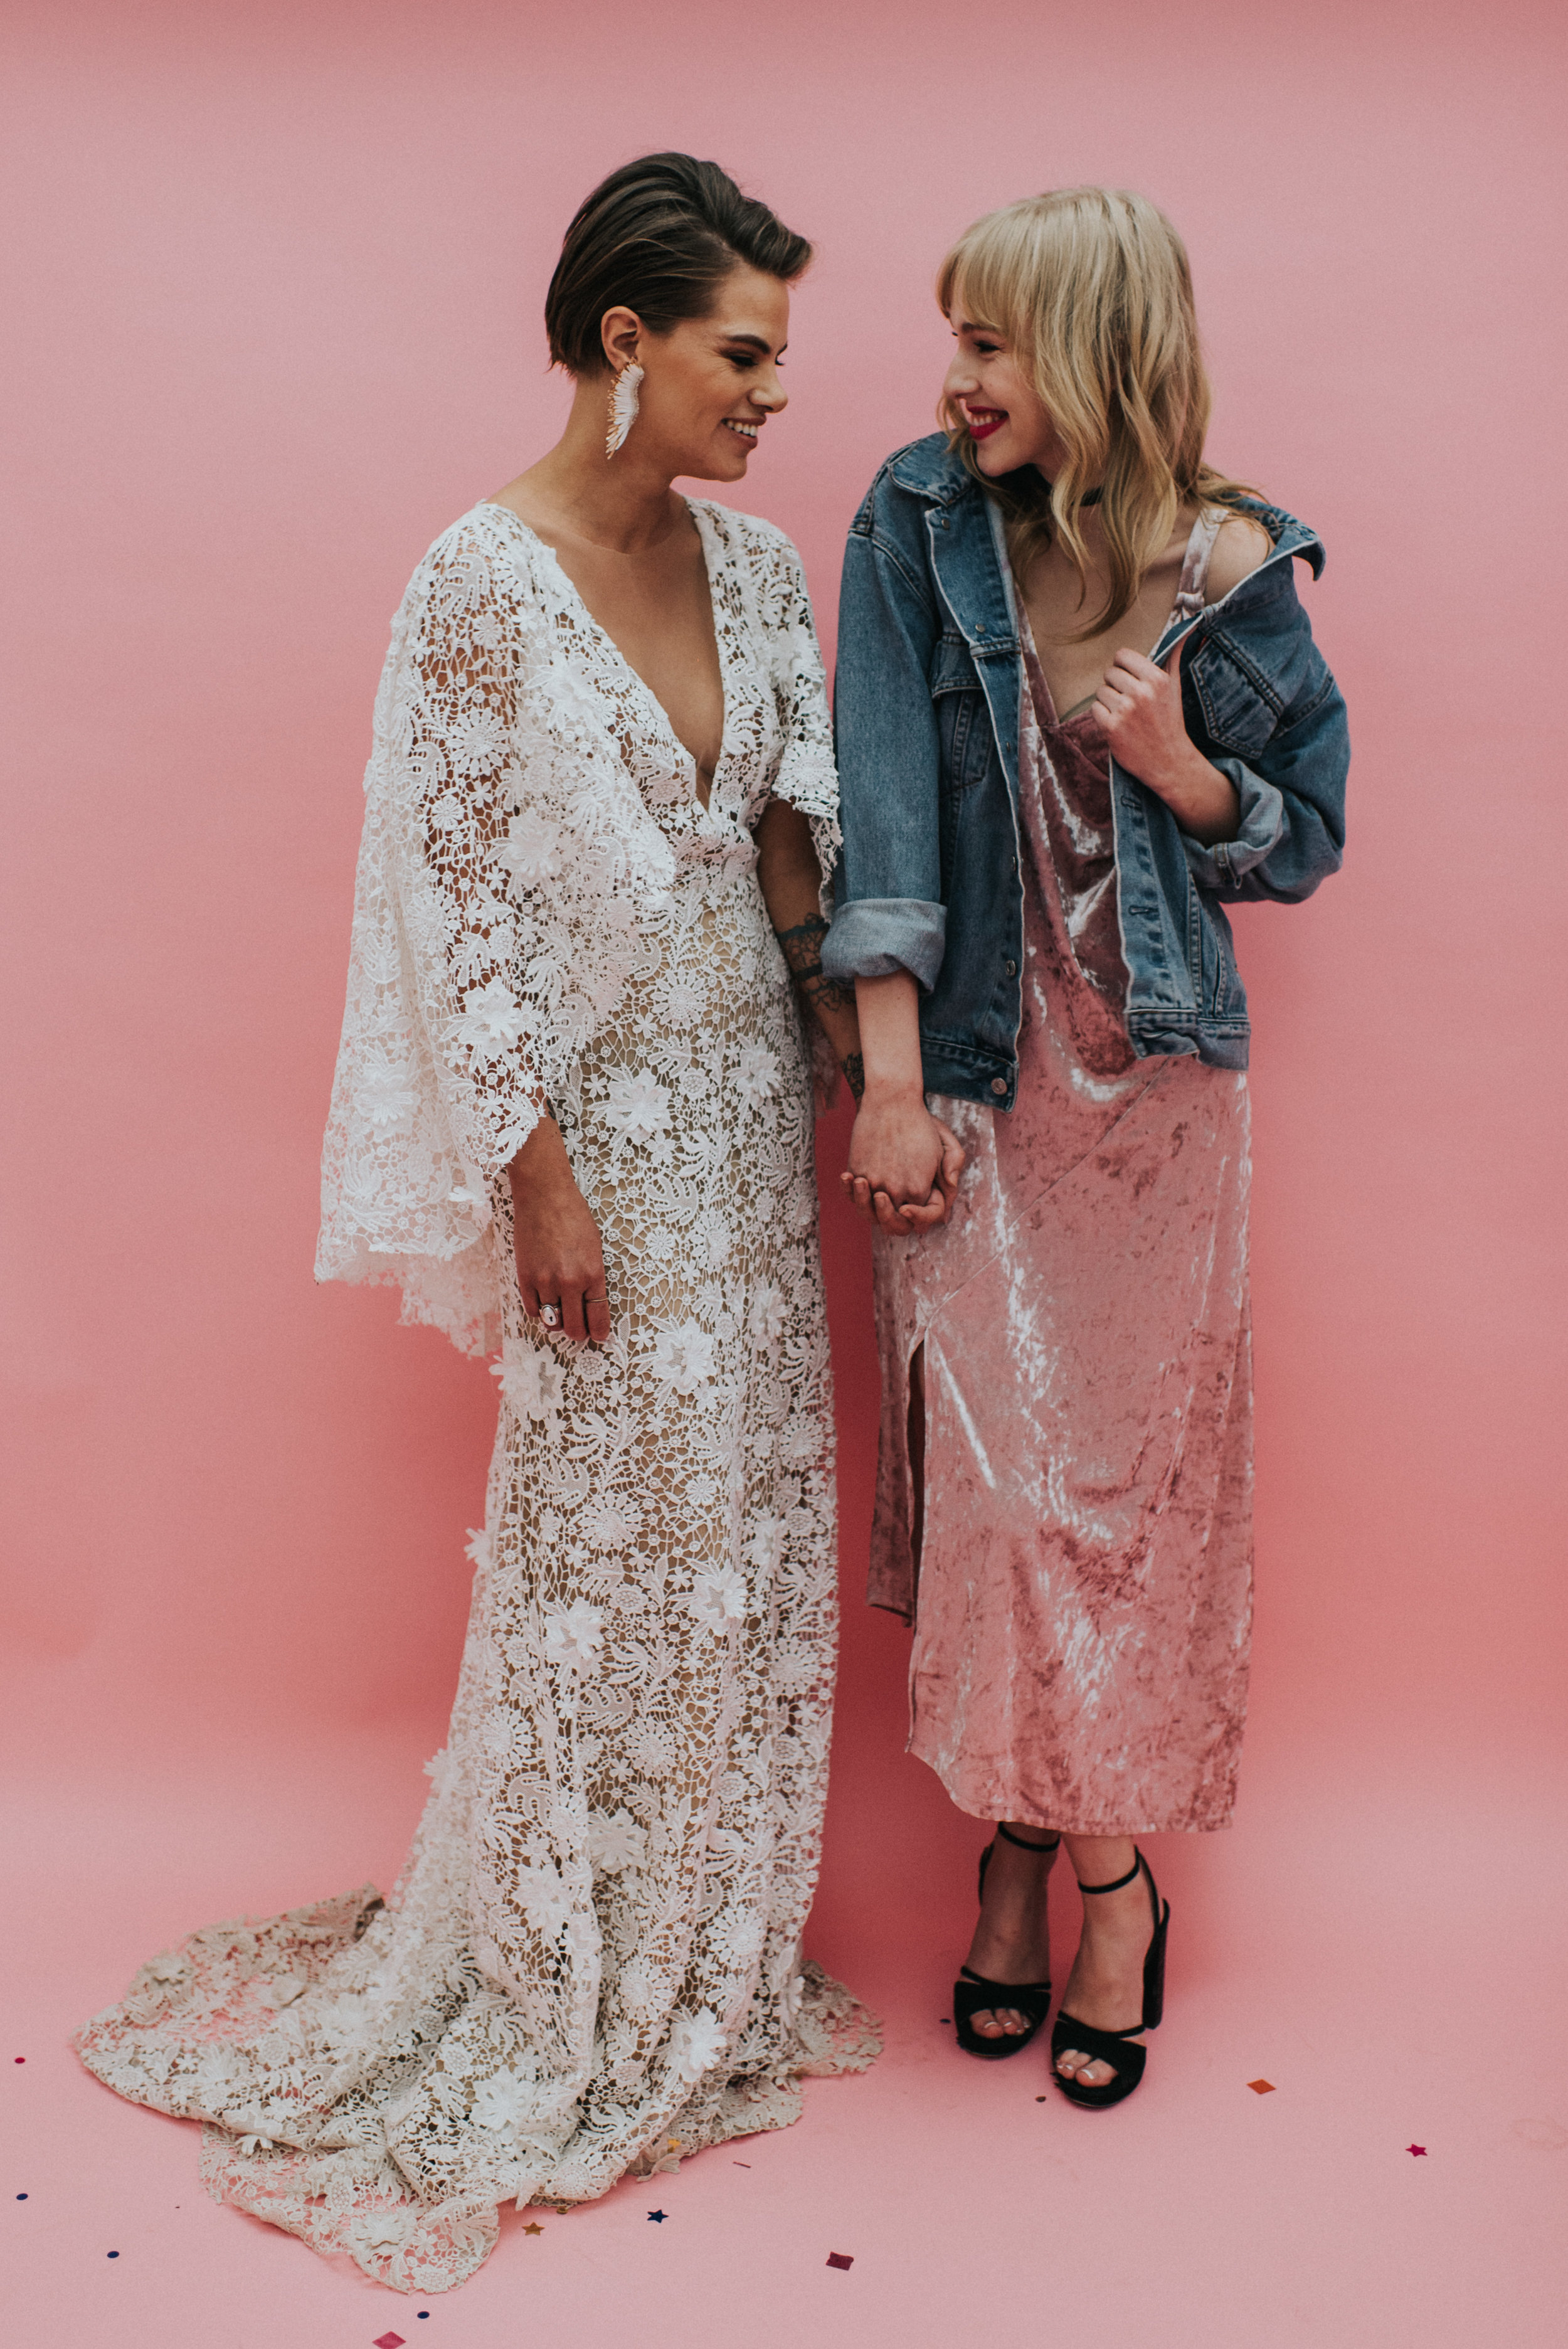 Millennial Pink Inspired Wedding - Velvet Bridesmaid Dress